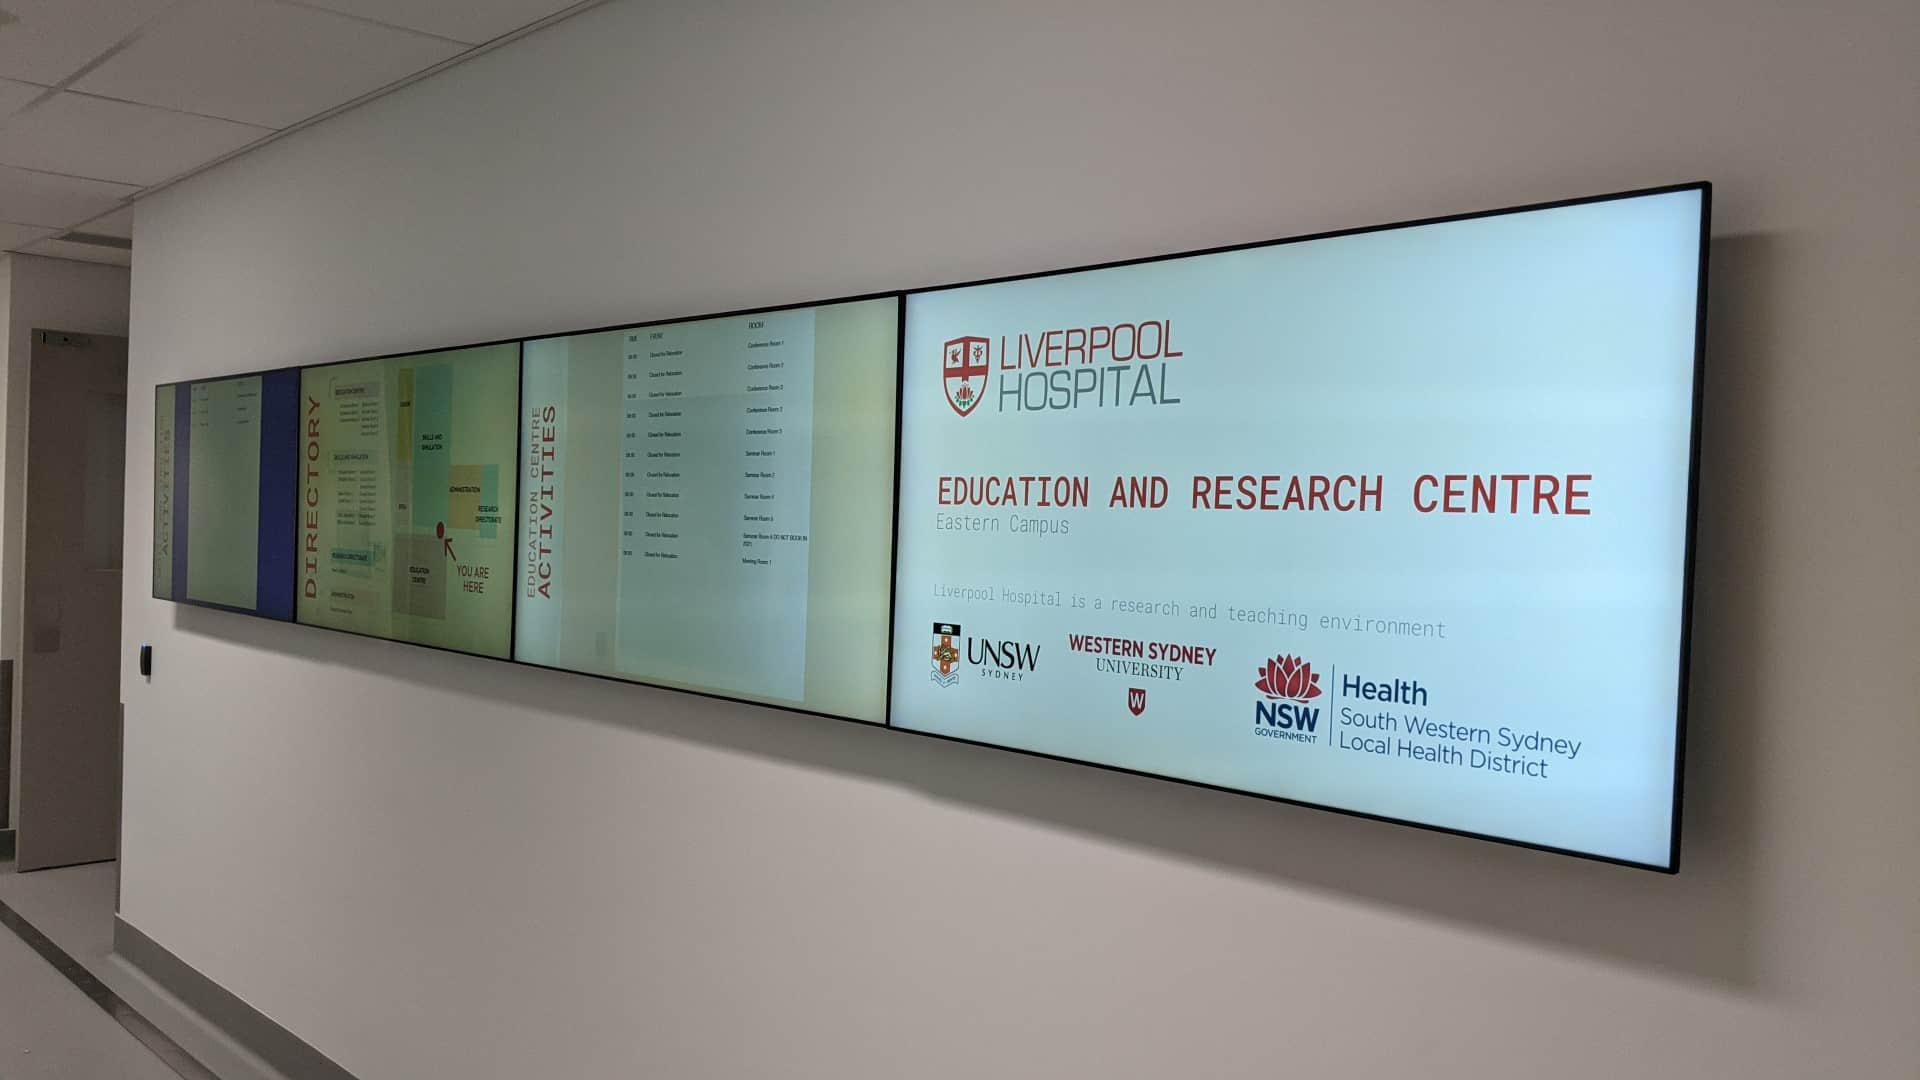 Video Wall Digital Directory Digital Wayfinding – UNSW Medicine & Health South West Sydney Precinct 4×1 Video Wall